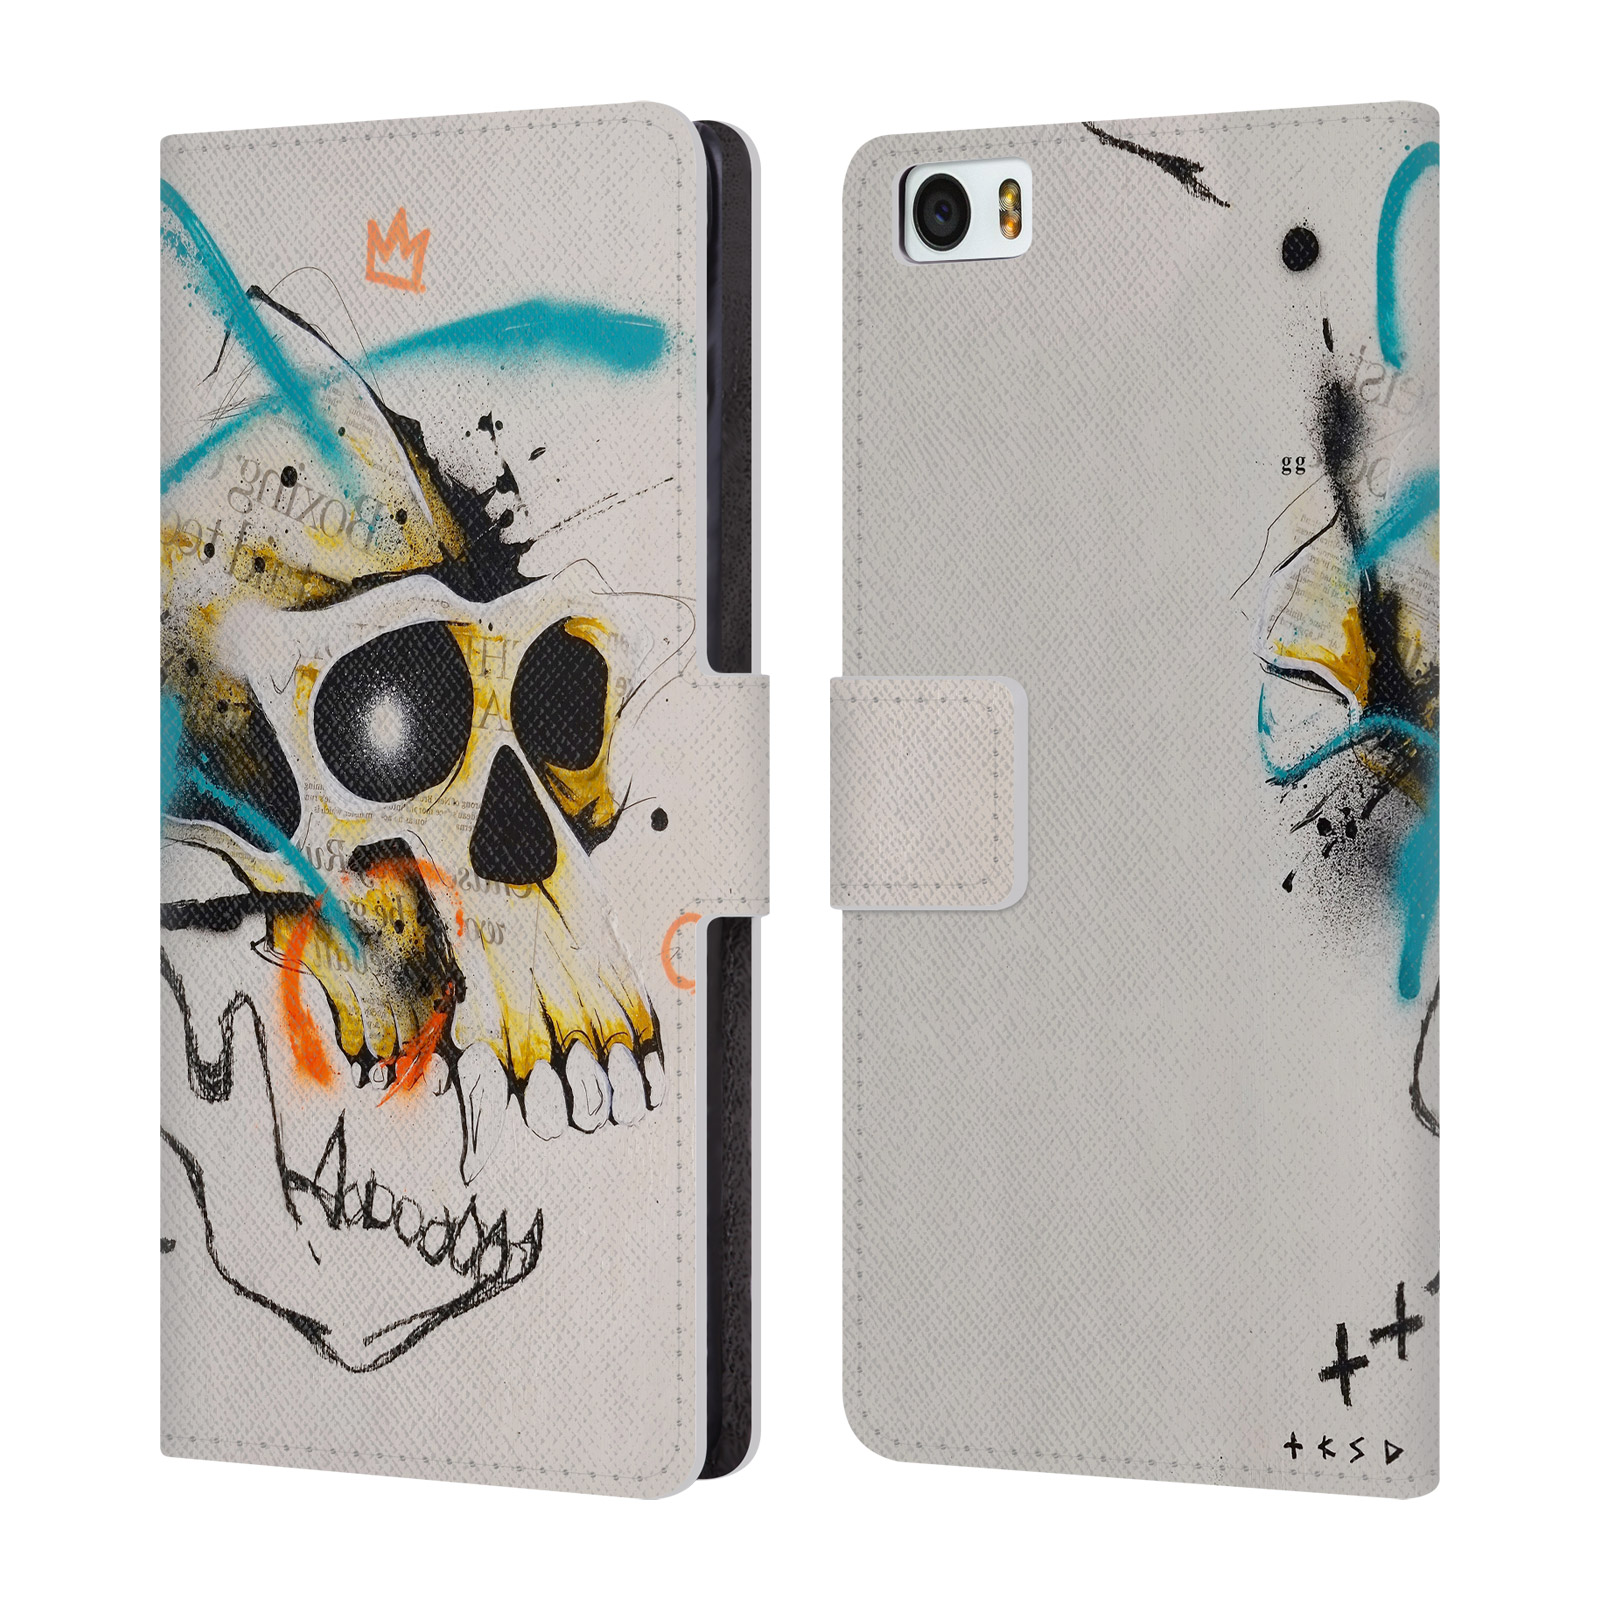 OFFICIAL-TAKA-SUDO-SKULLS-LEATHER-BOOK-WALLET-CASE-COVER-FOR-XIAOMI-PHONES